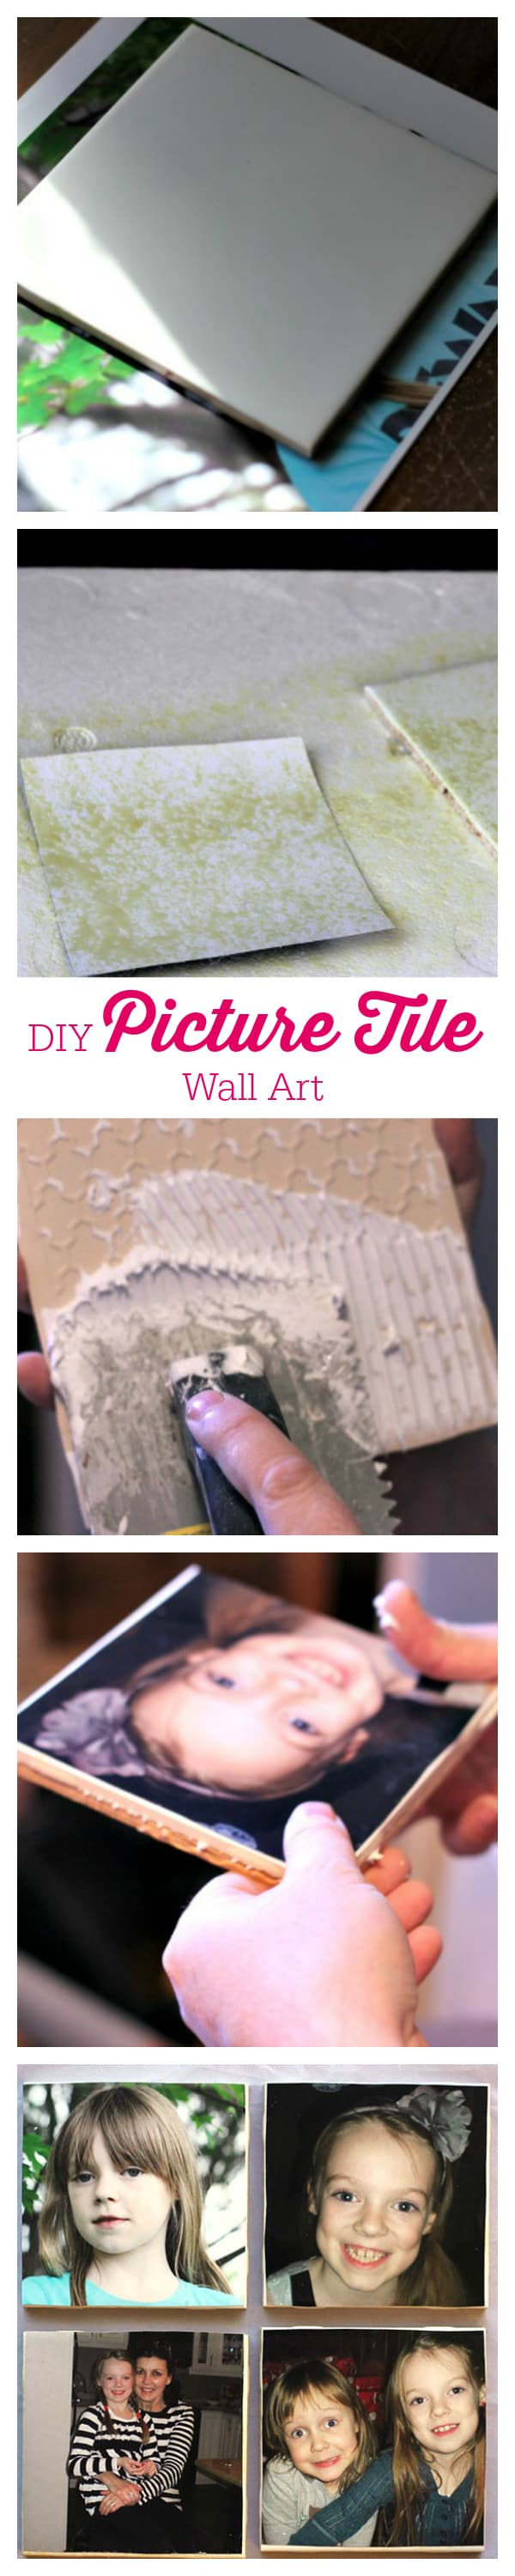 DIY Picture Tile Wall Art